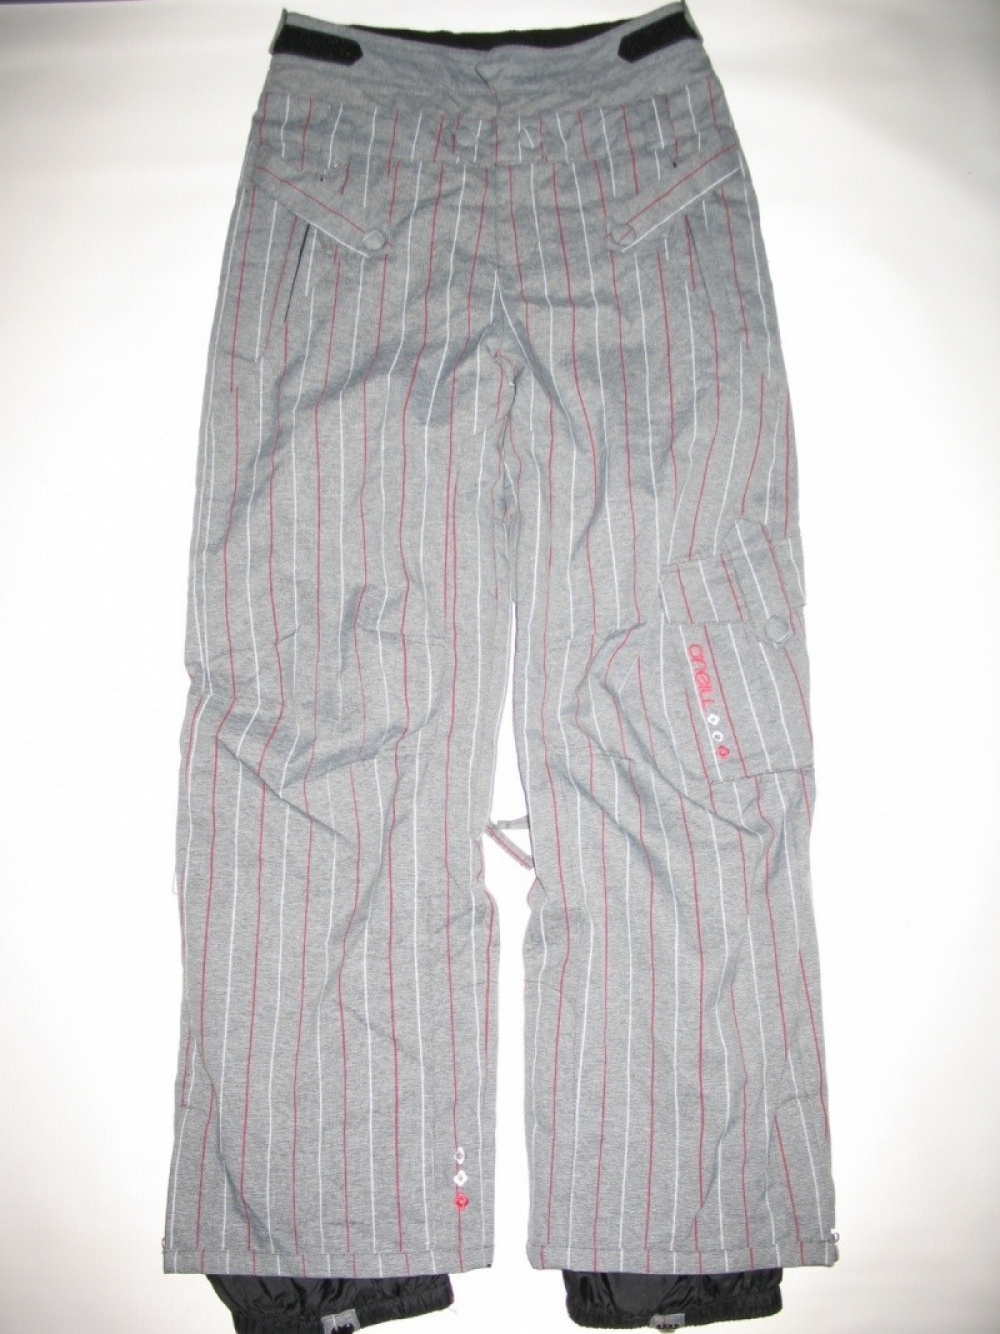 Штаны O'NEILL pants 5/5 lady  (размер 36-S/M) - 17454